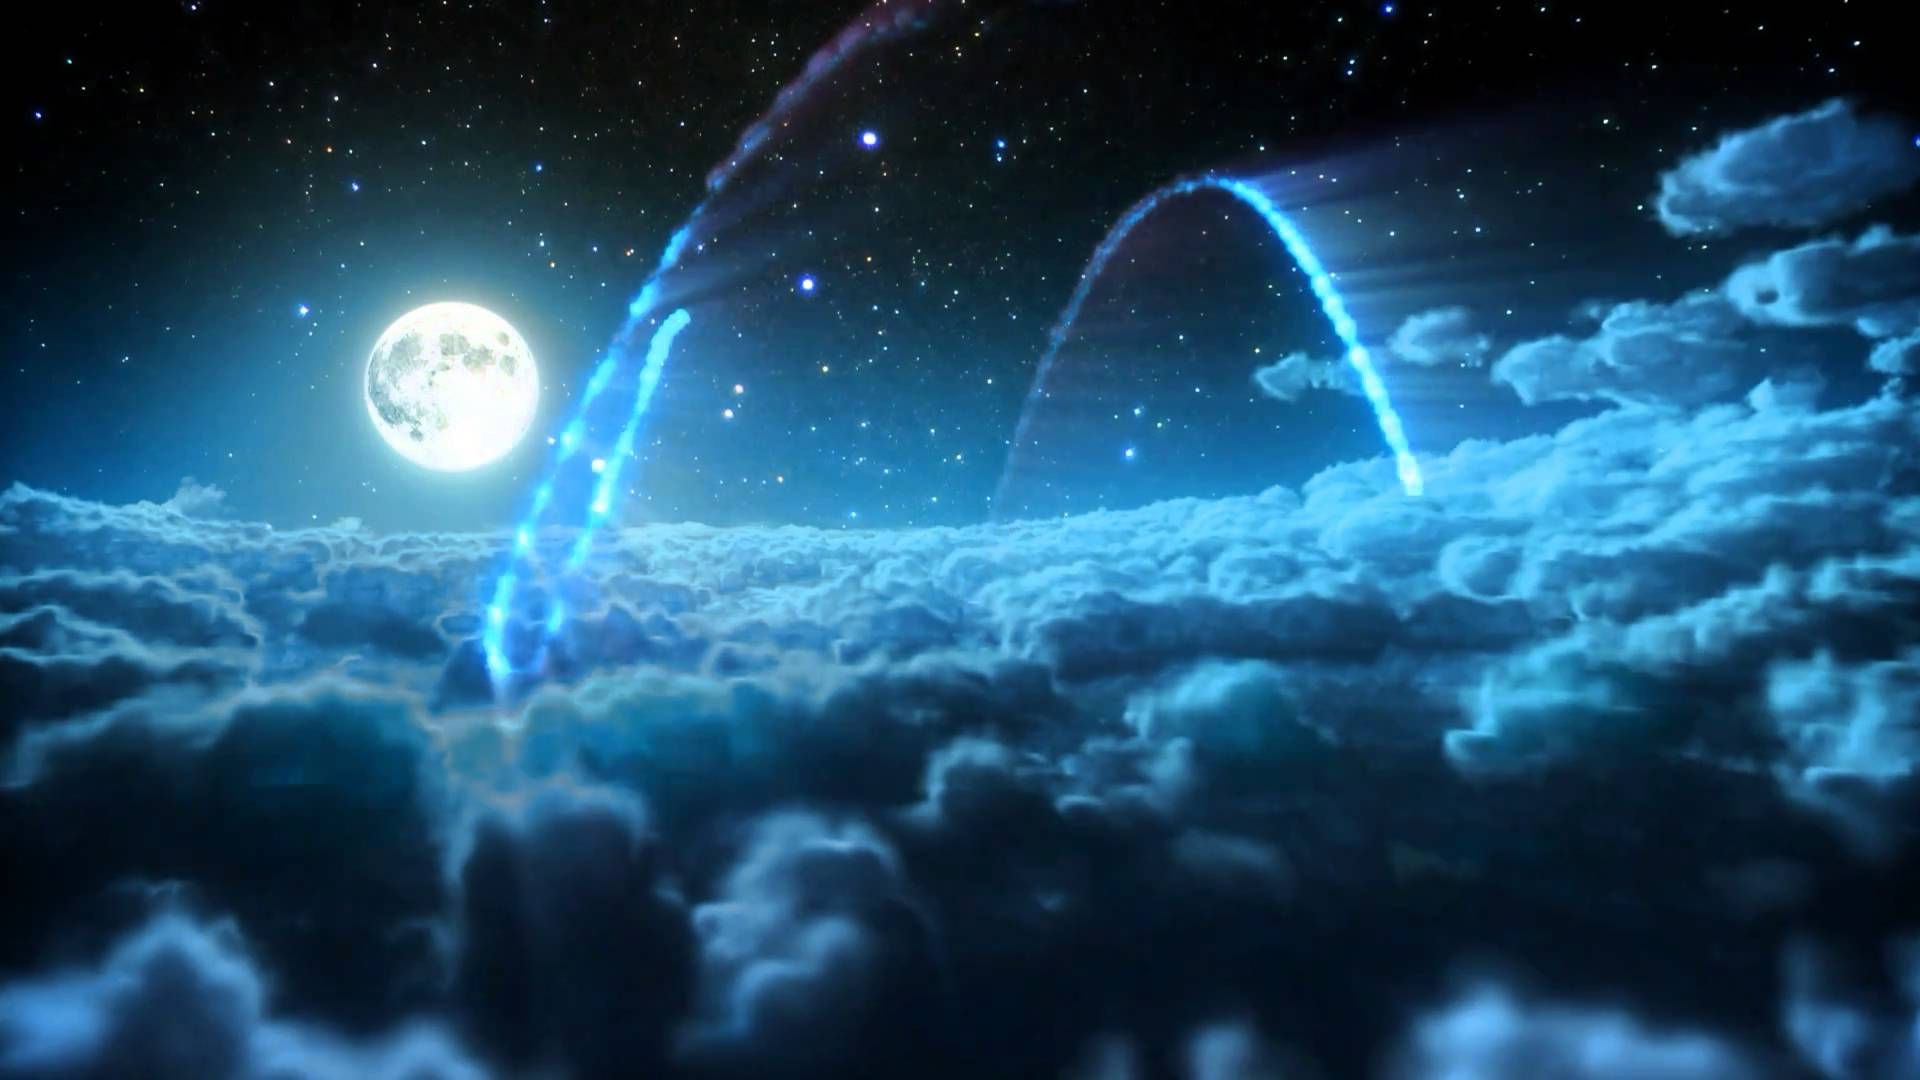 LOGO INTRO 3D High Definition 1080p 720p Night Sky